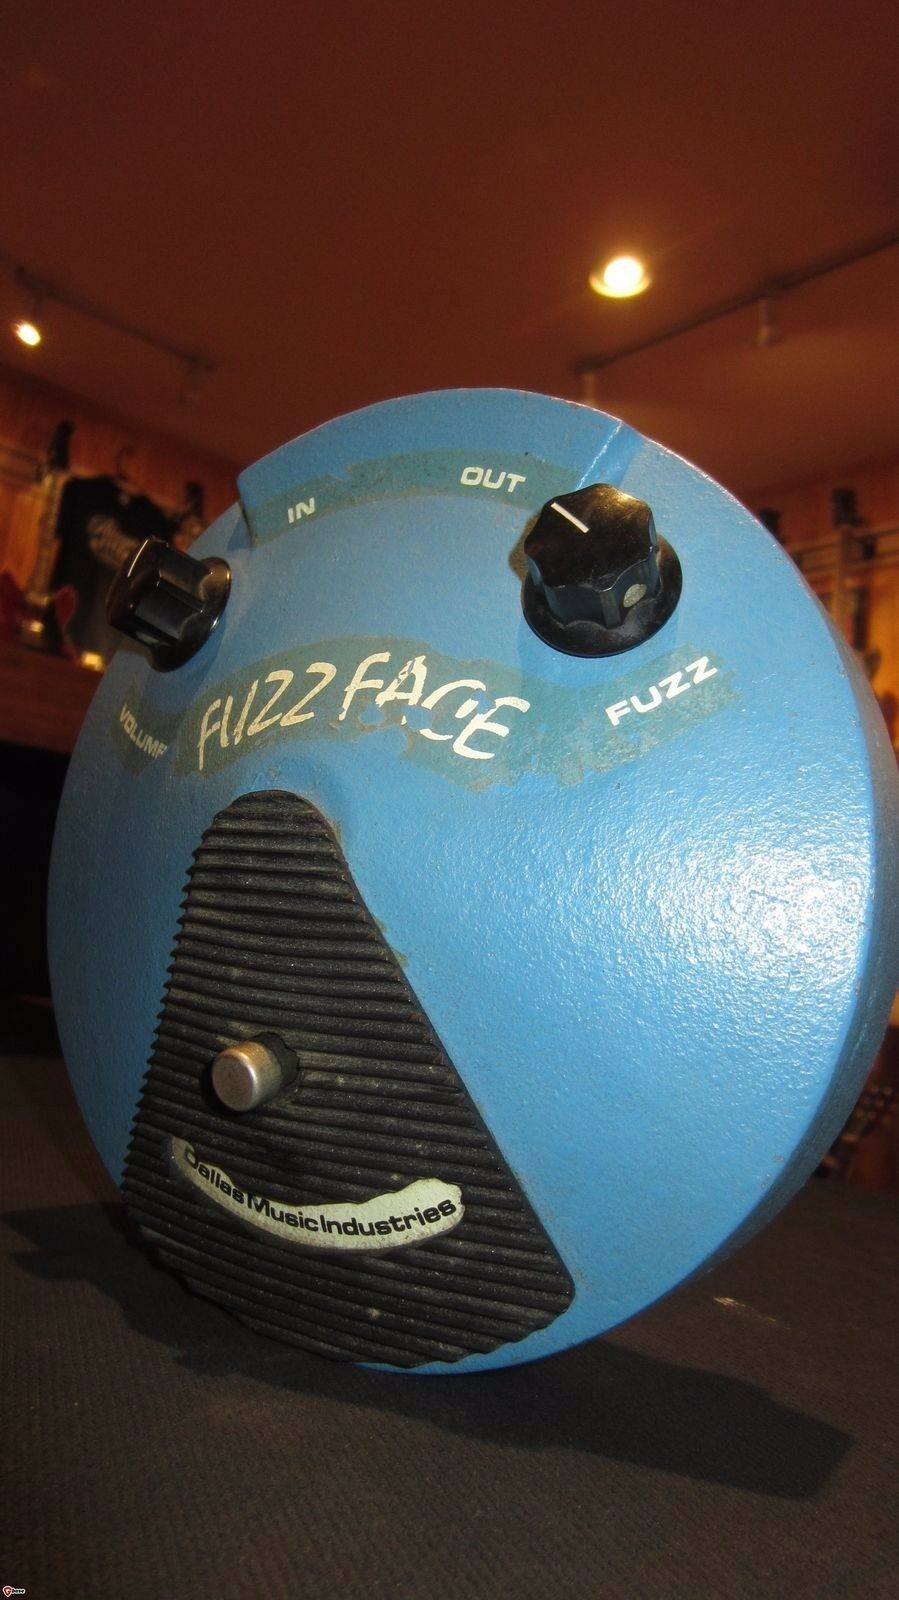 Vintage Orig 1976 Dallas Musical Fuzz Face Distortion Effect Pedal bluee Amazing